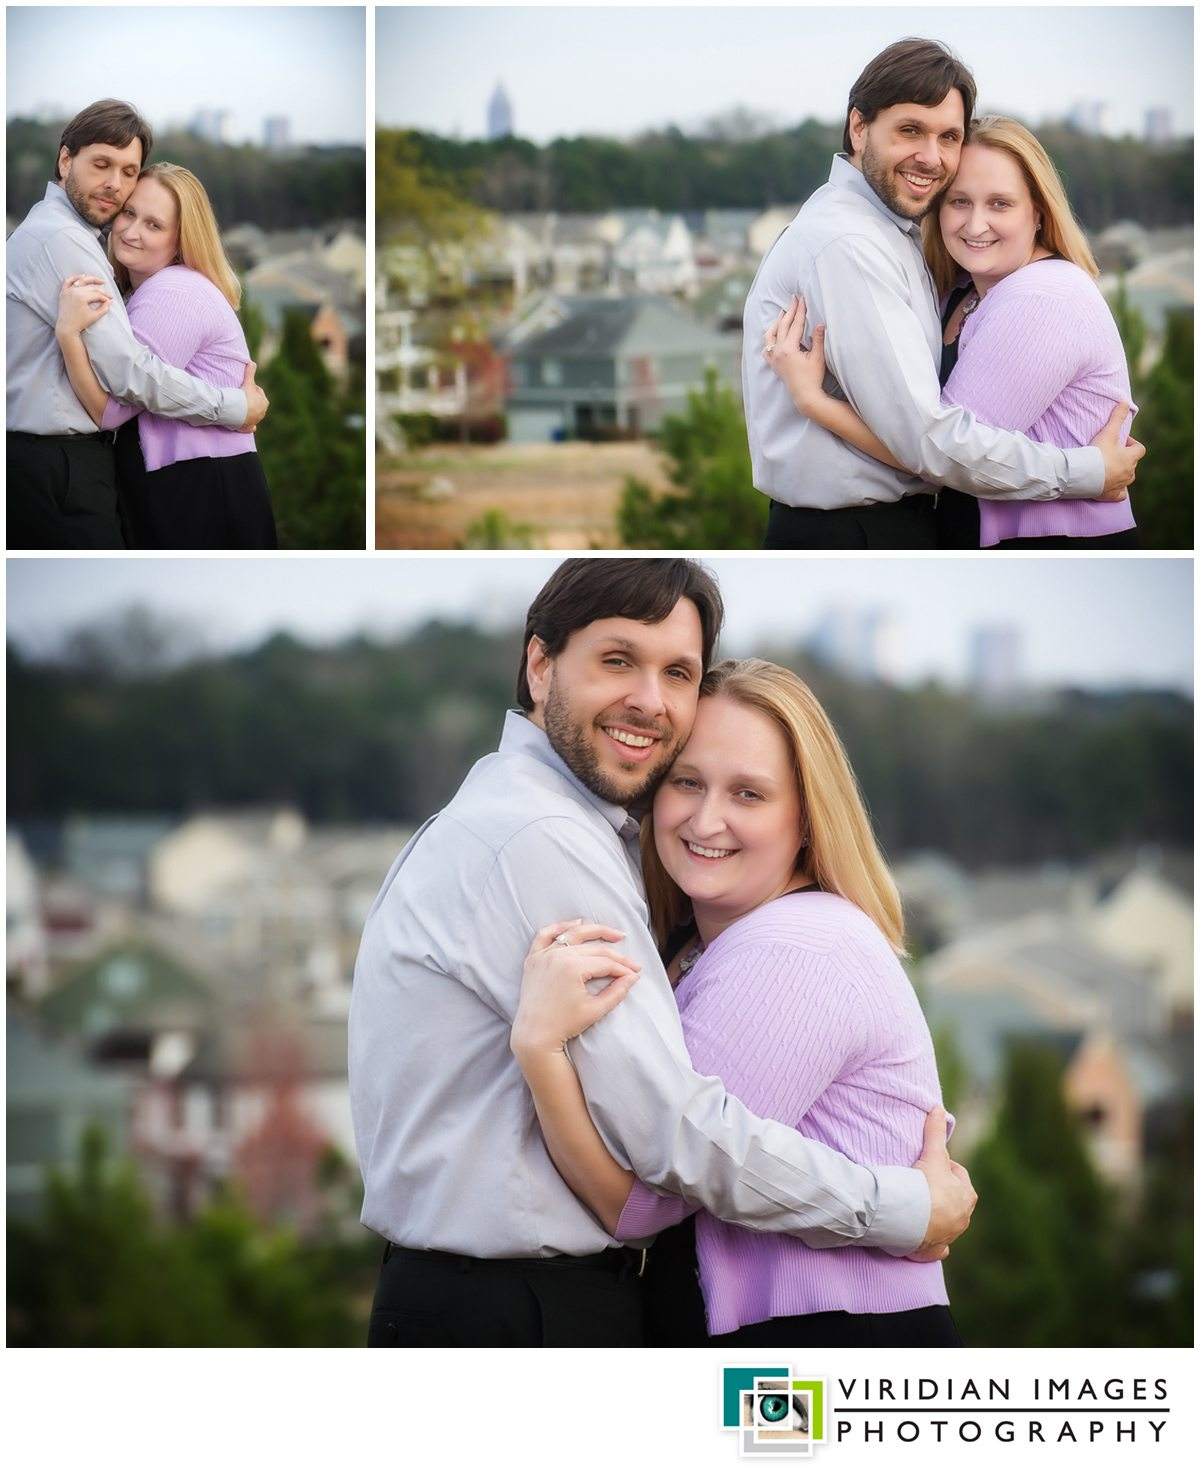 Atlanta_Engagement_ViridianImages_Hillary_Bruce_photo-10